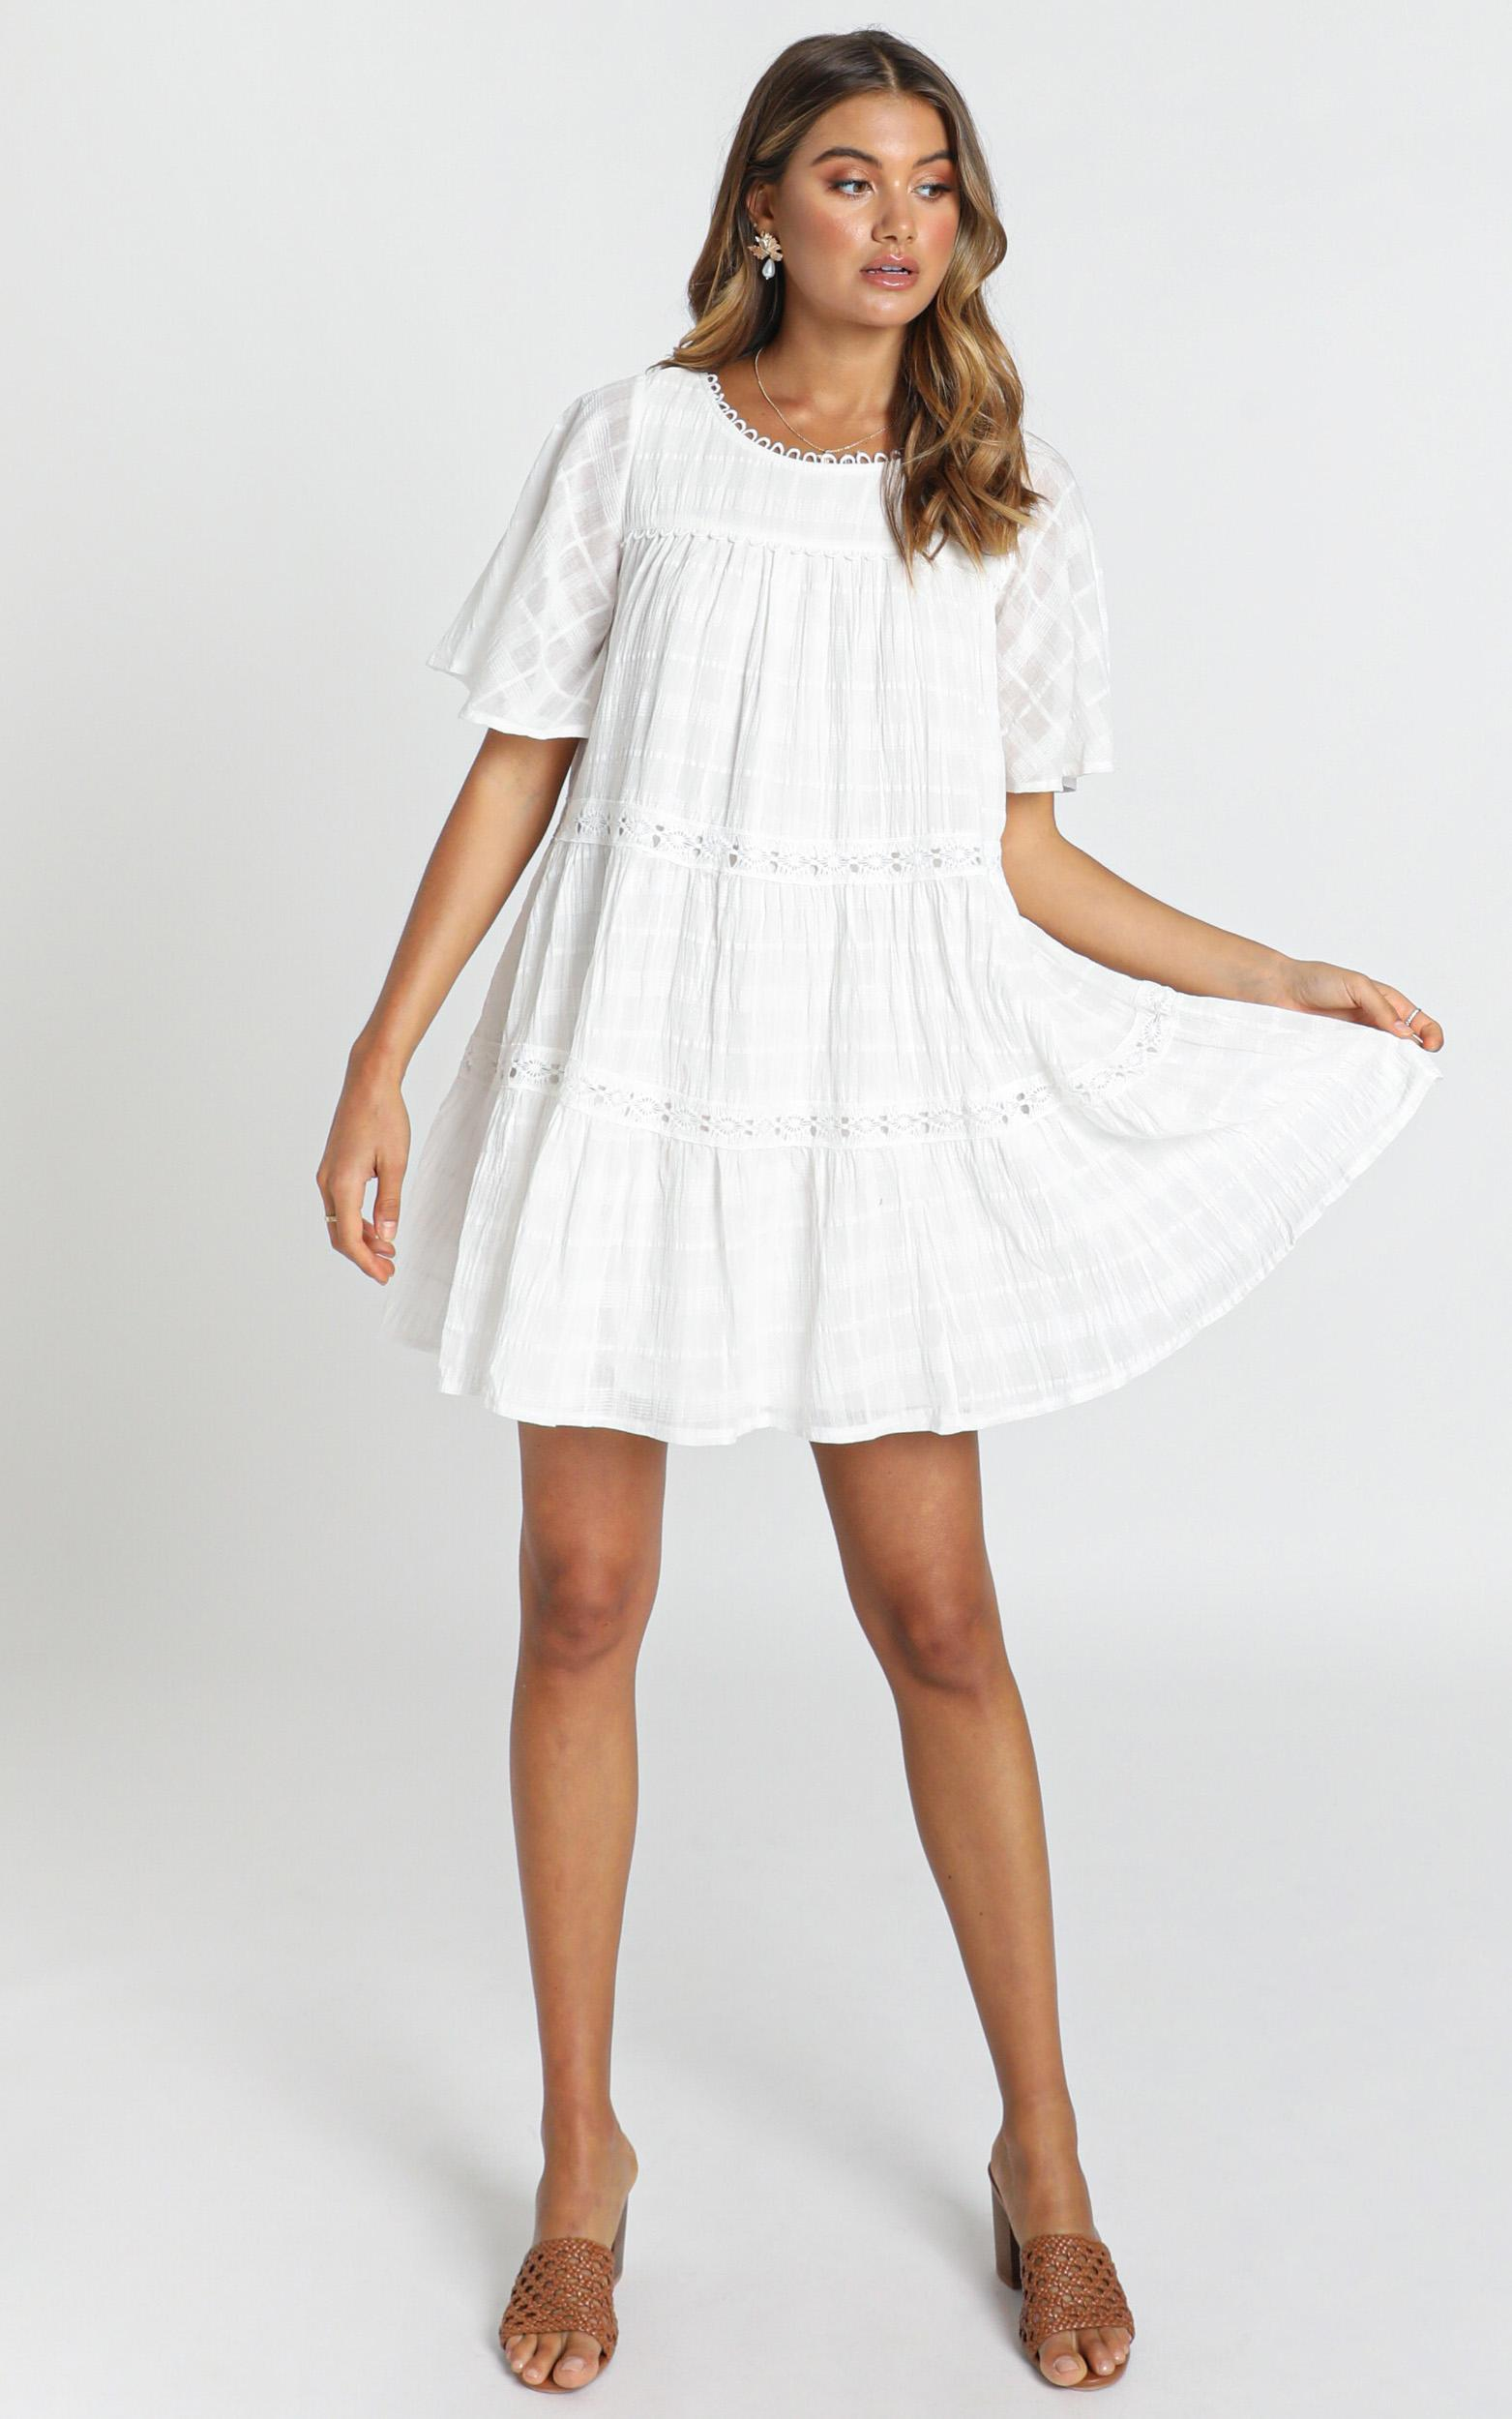 Oceana Tiered Smock Dress in white - 14 (XL), White, hi-res image number null